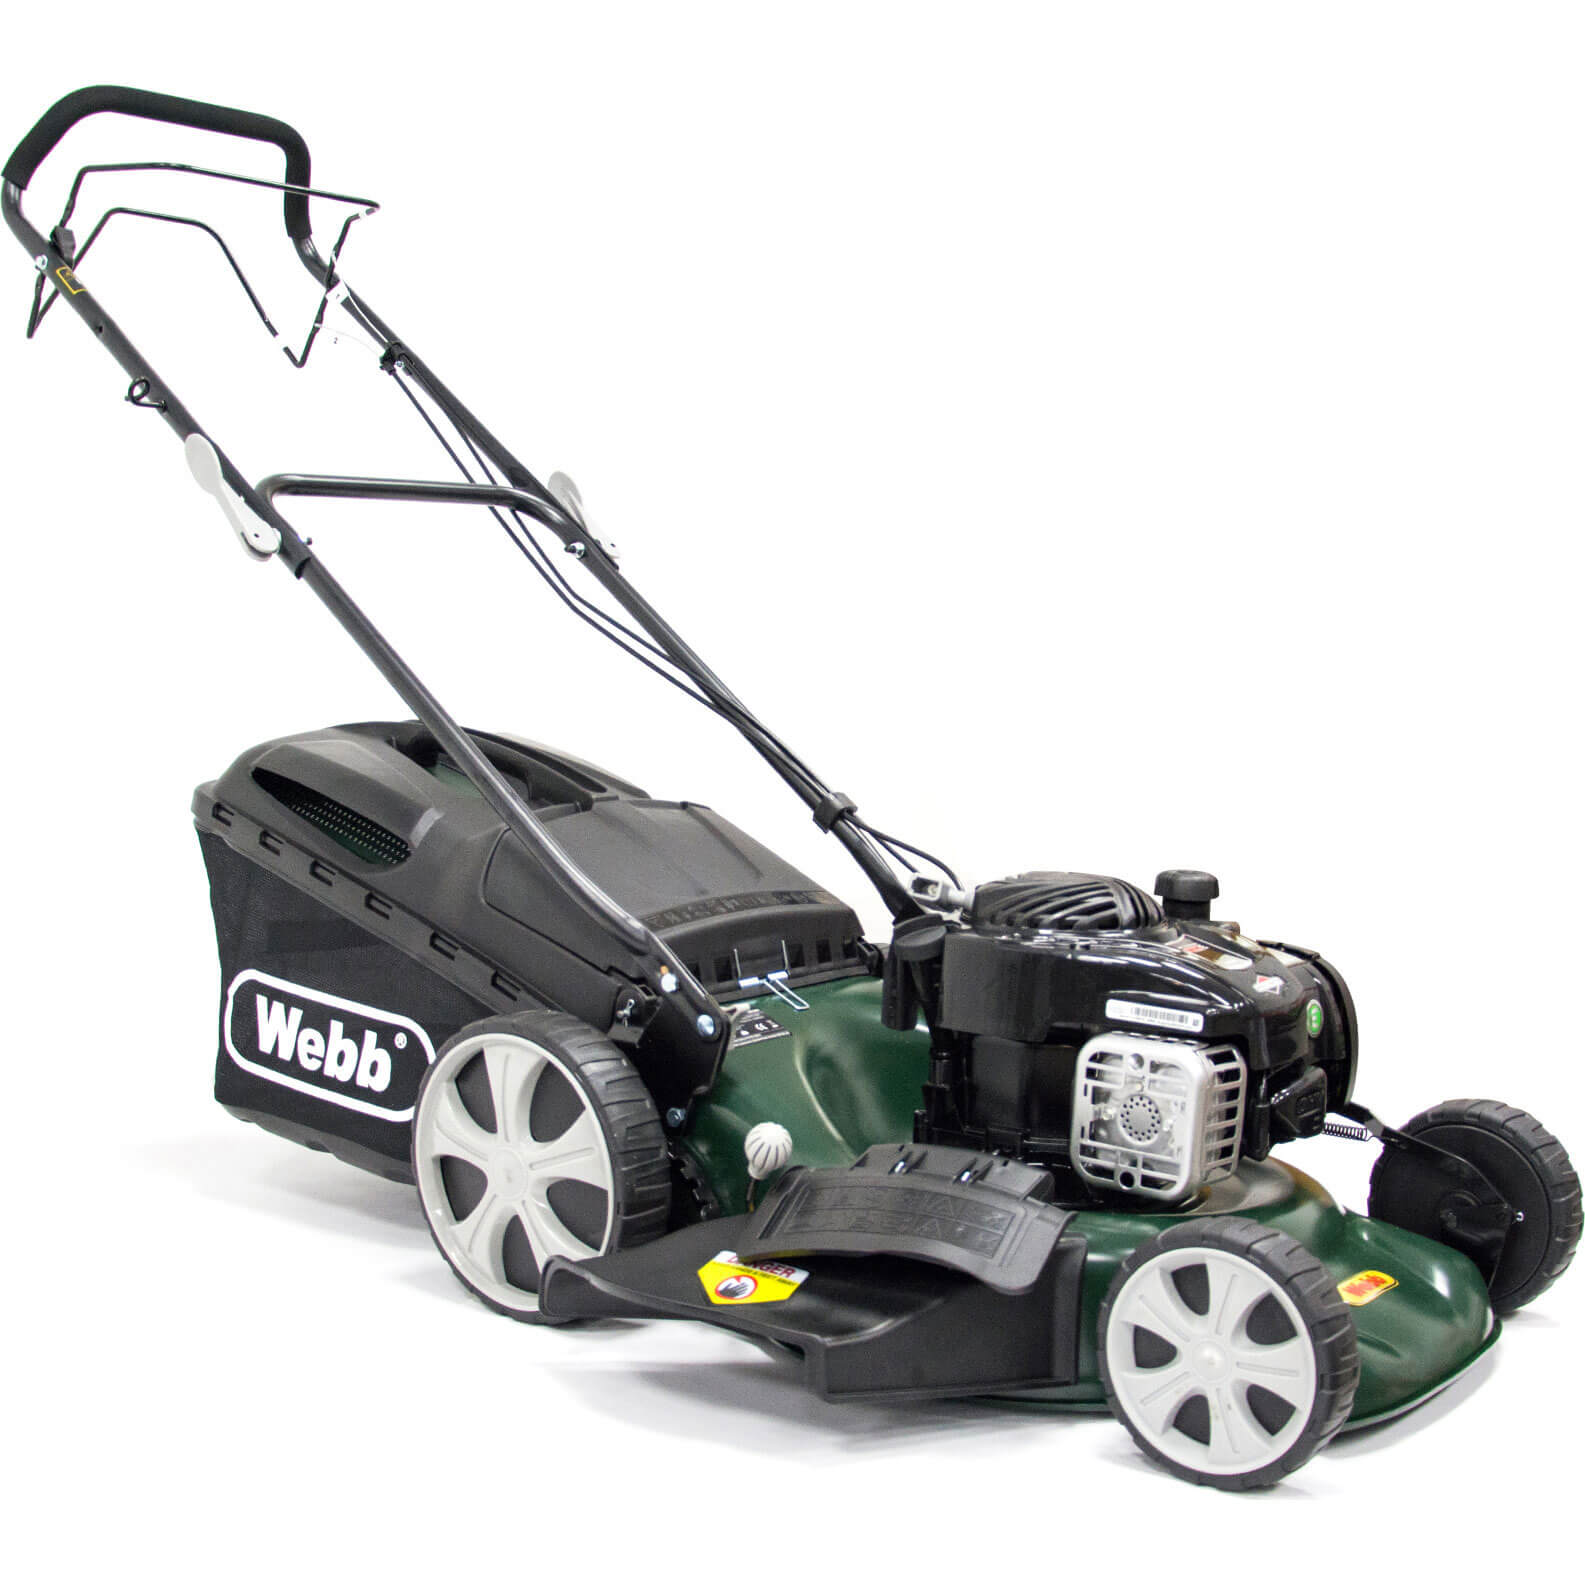 Image of Webb WER18HW Self Propelled Petrol 3 in 1 Rotary Lawnmower 460mm